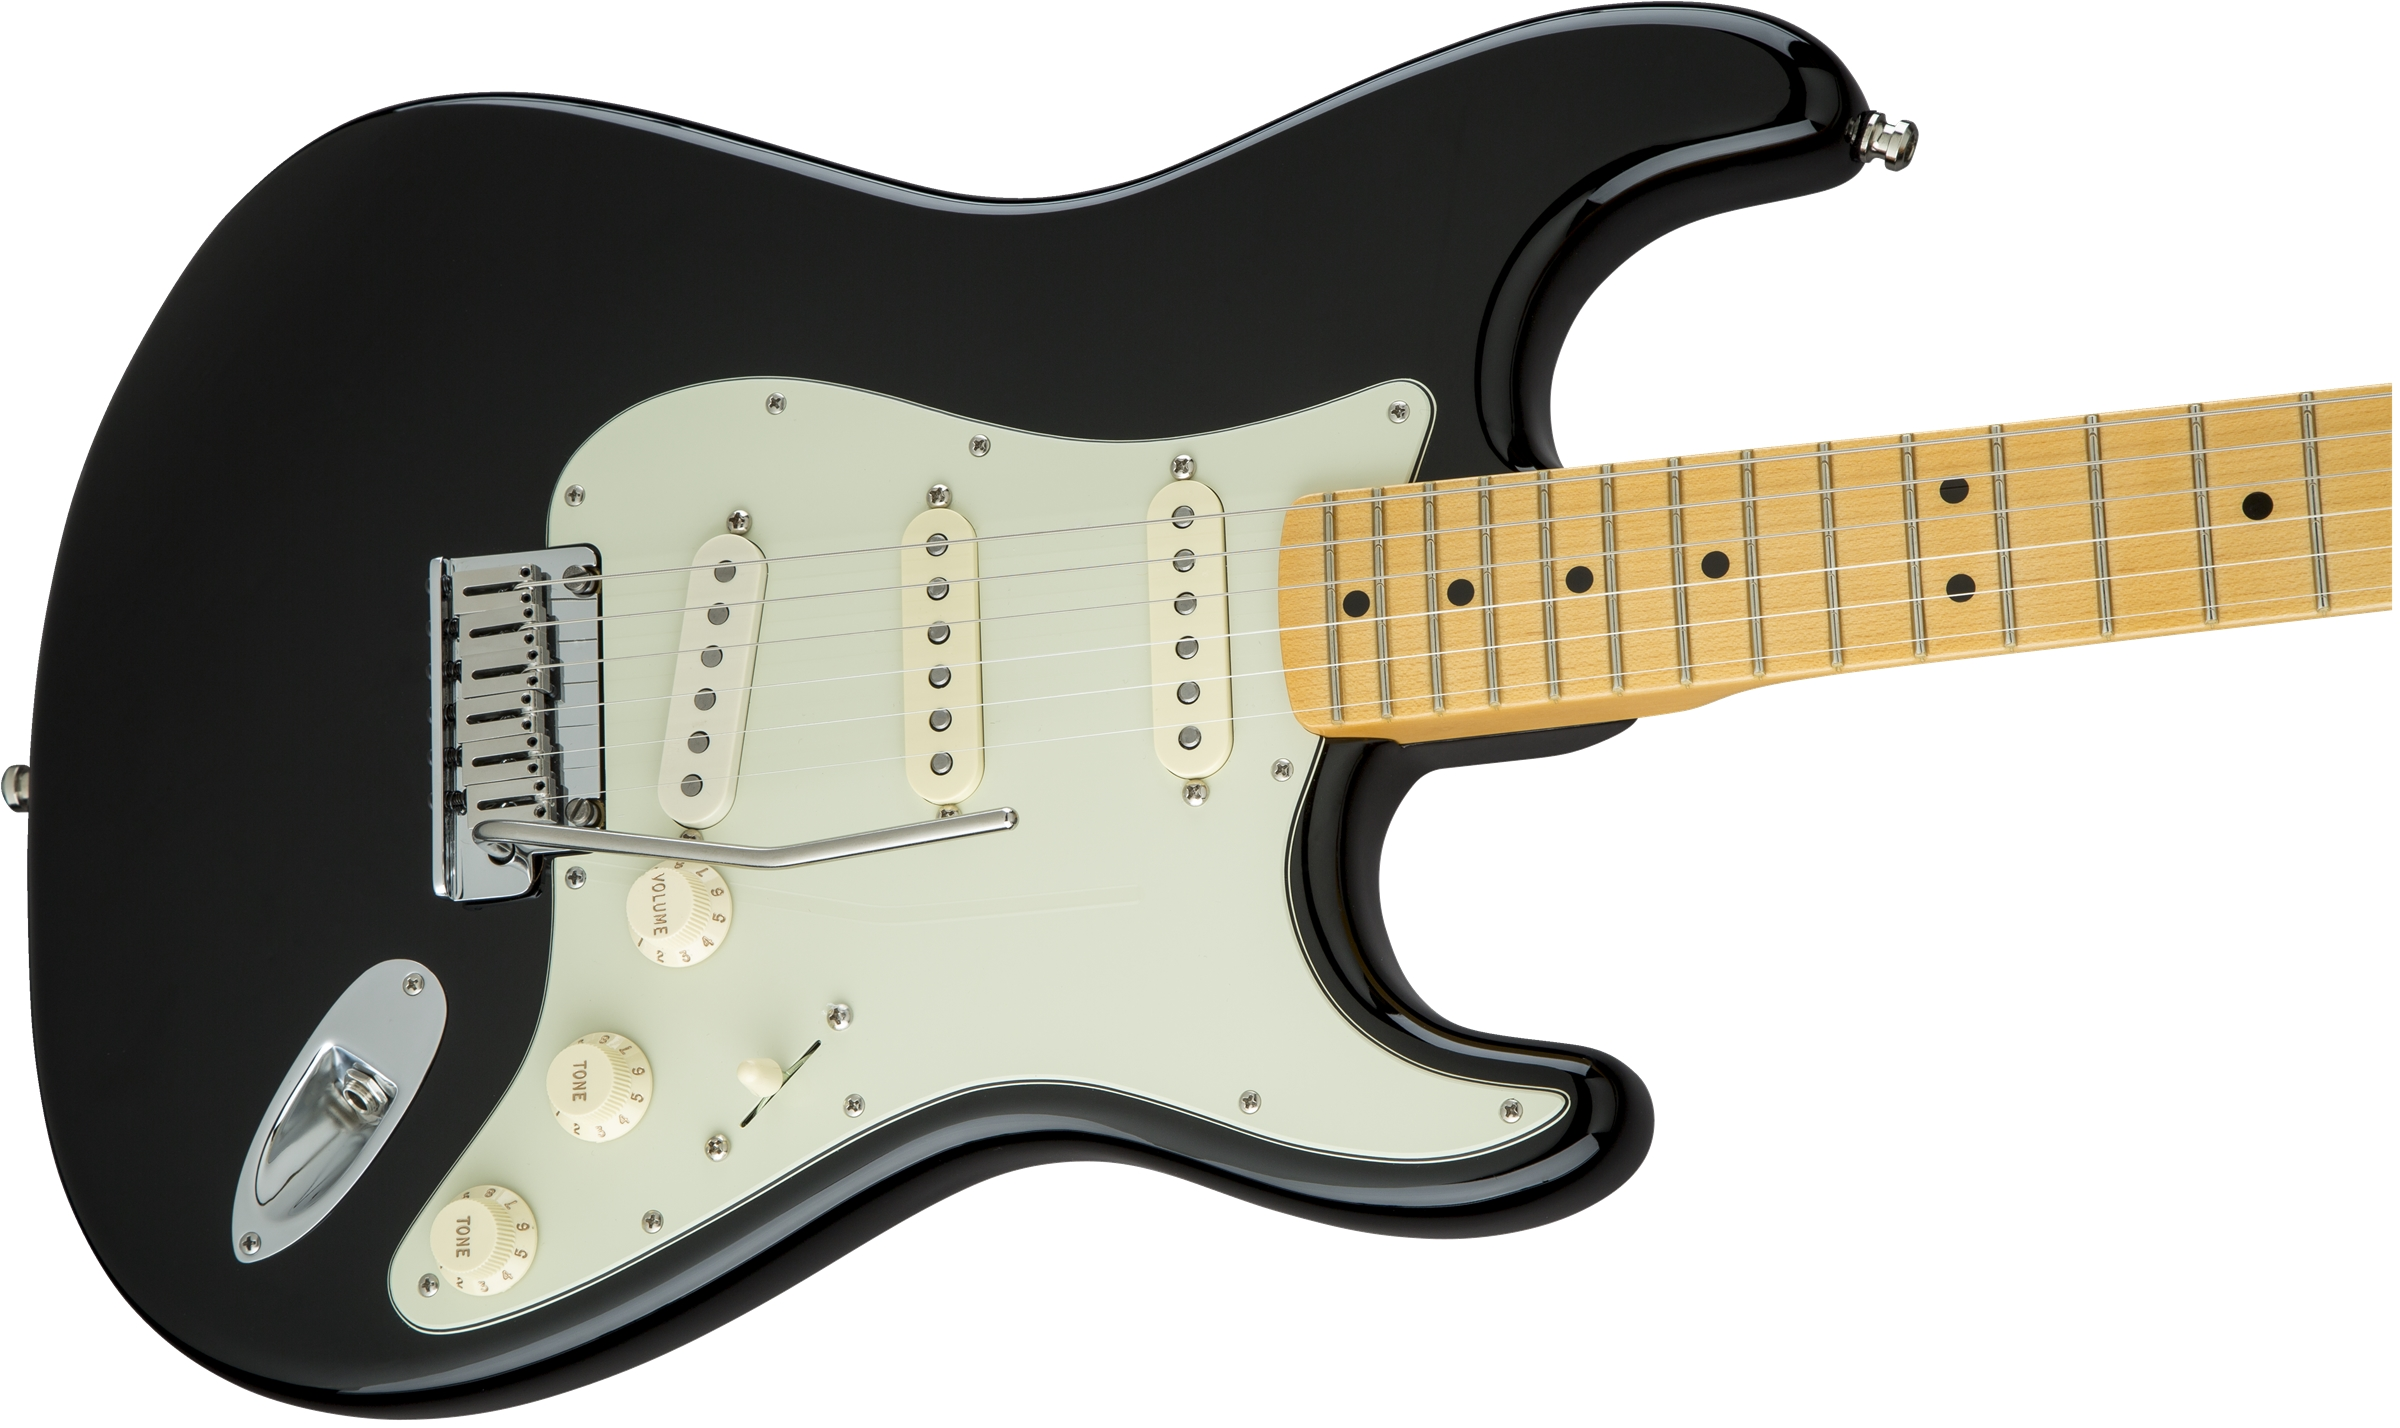 The edge strat black